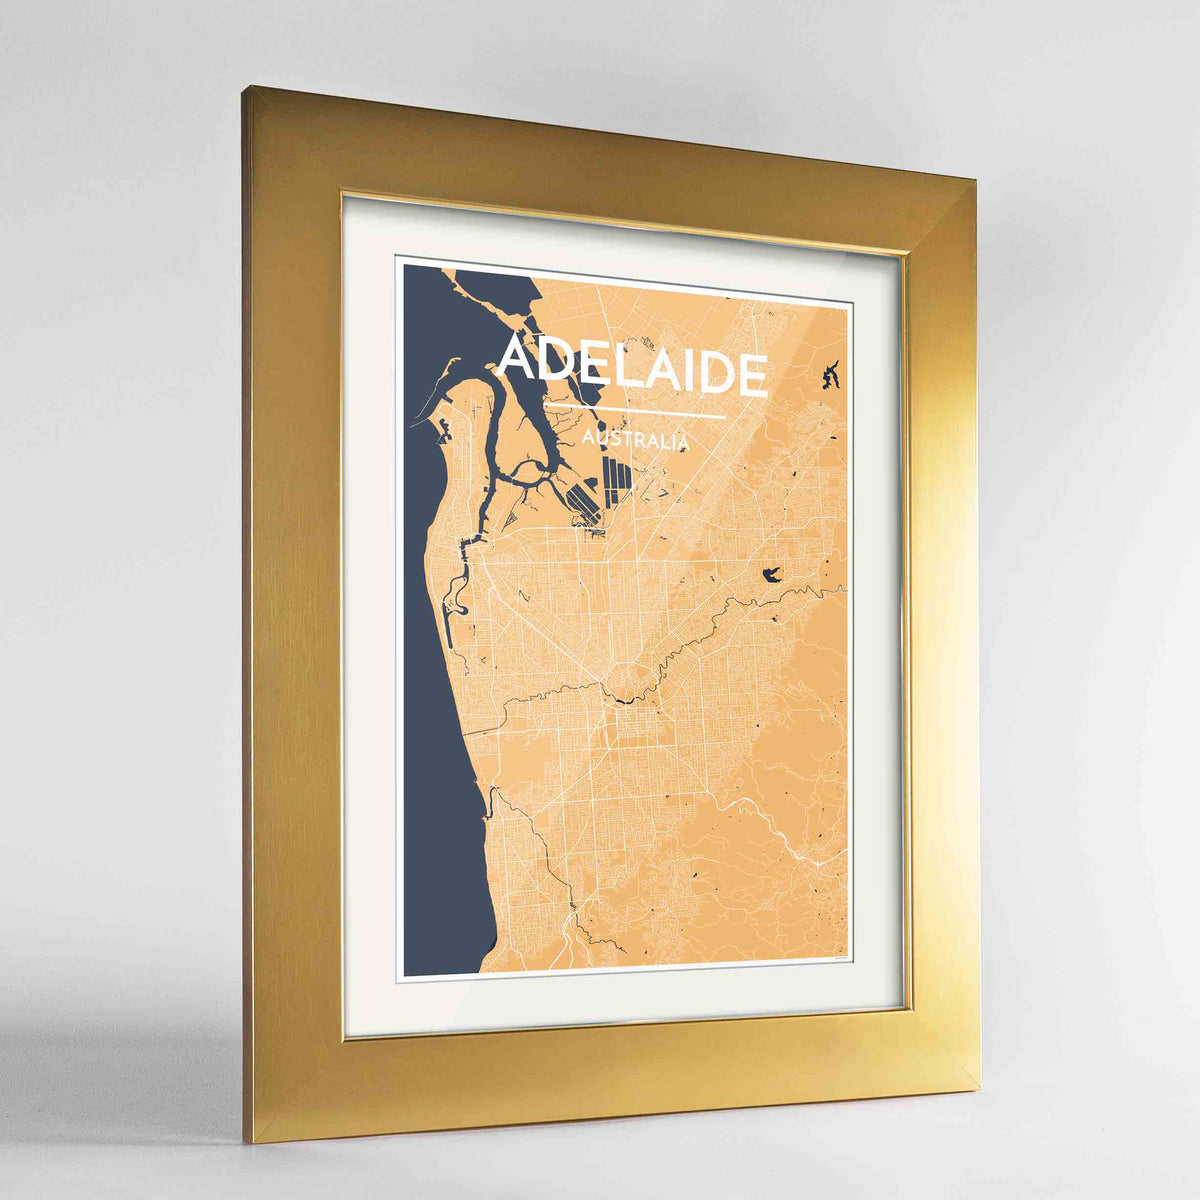 "Framed Adelaide Map Art Print 24x36"" Gold frame Point Two Design Group"